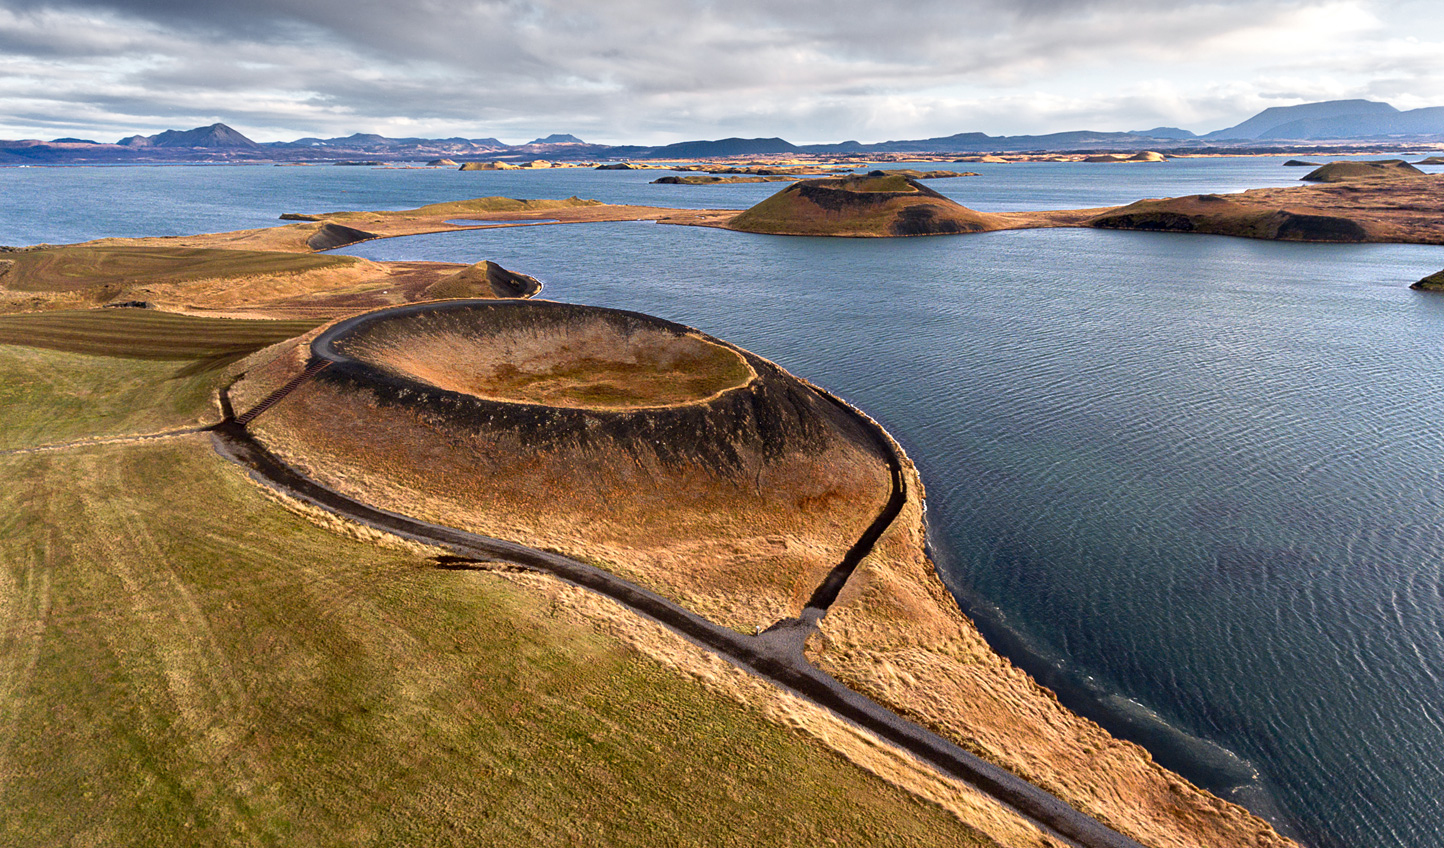 Landscapes carved by centuries of volcanic activity